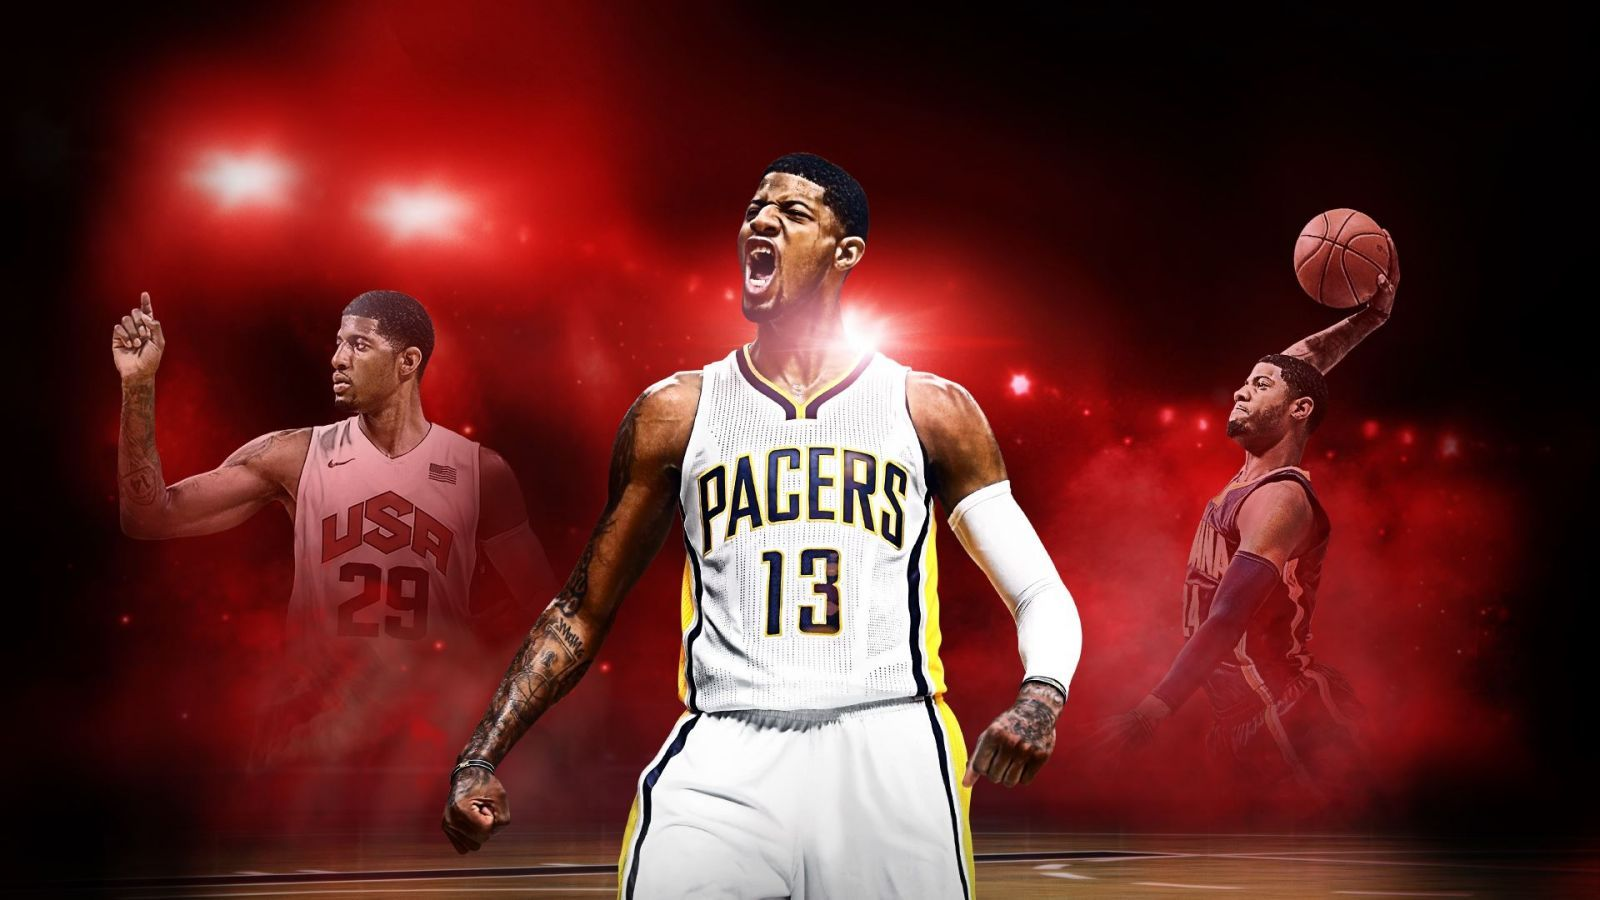 NBA 2K17: 2K Announced Unlimited Free Agent Codes - u4nba.com